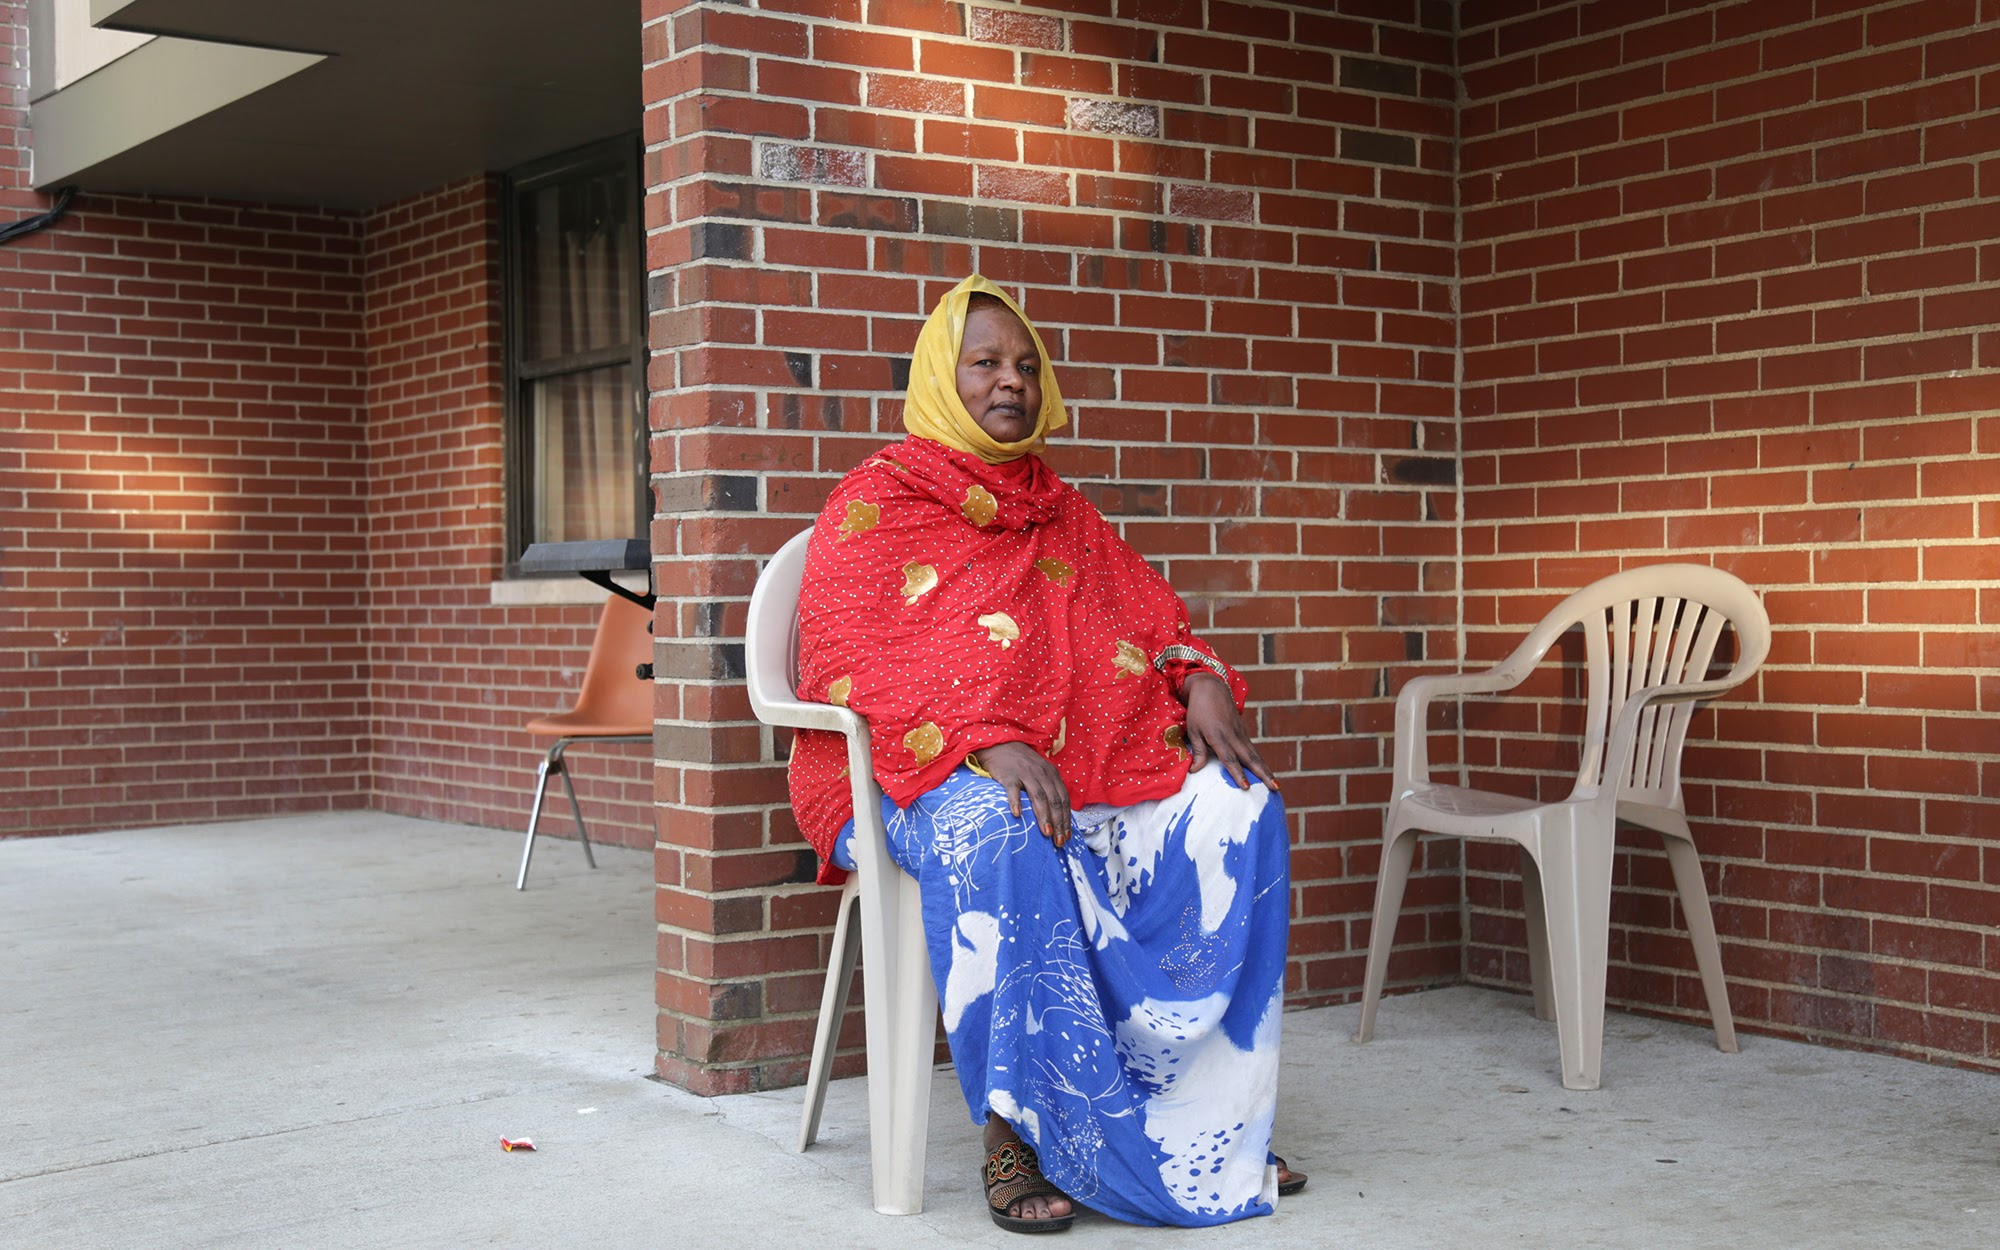 Fatuma Sharif's journey to Pittsburgh has been long, and her family's struggle is not over as she continues to fight for her adult children and grandchildren to join her. (Photo by Ryan Loew/PublicSource)